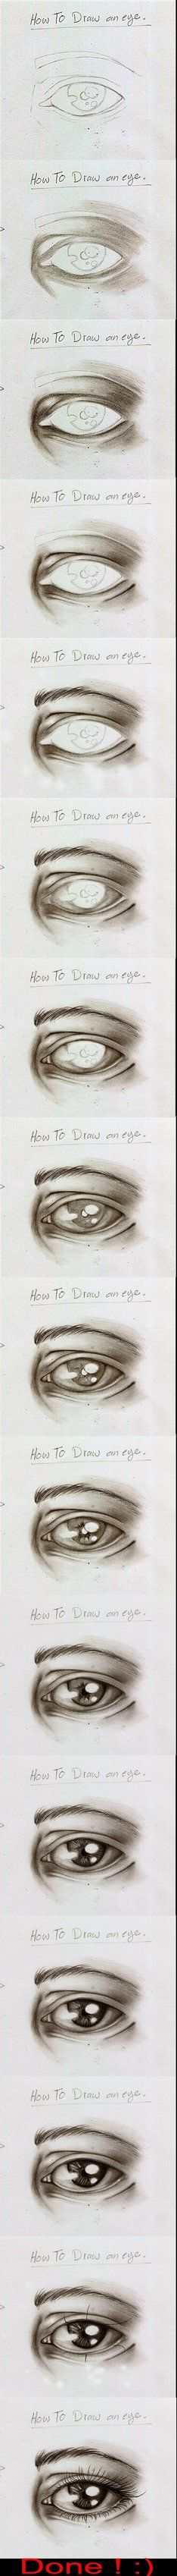 How To Draw an Eye by ~Simiko on deviantART (simple faces to draw)